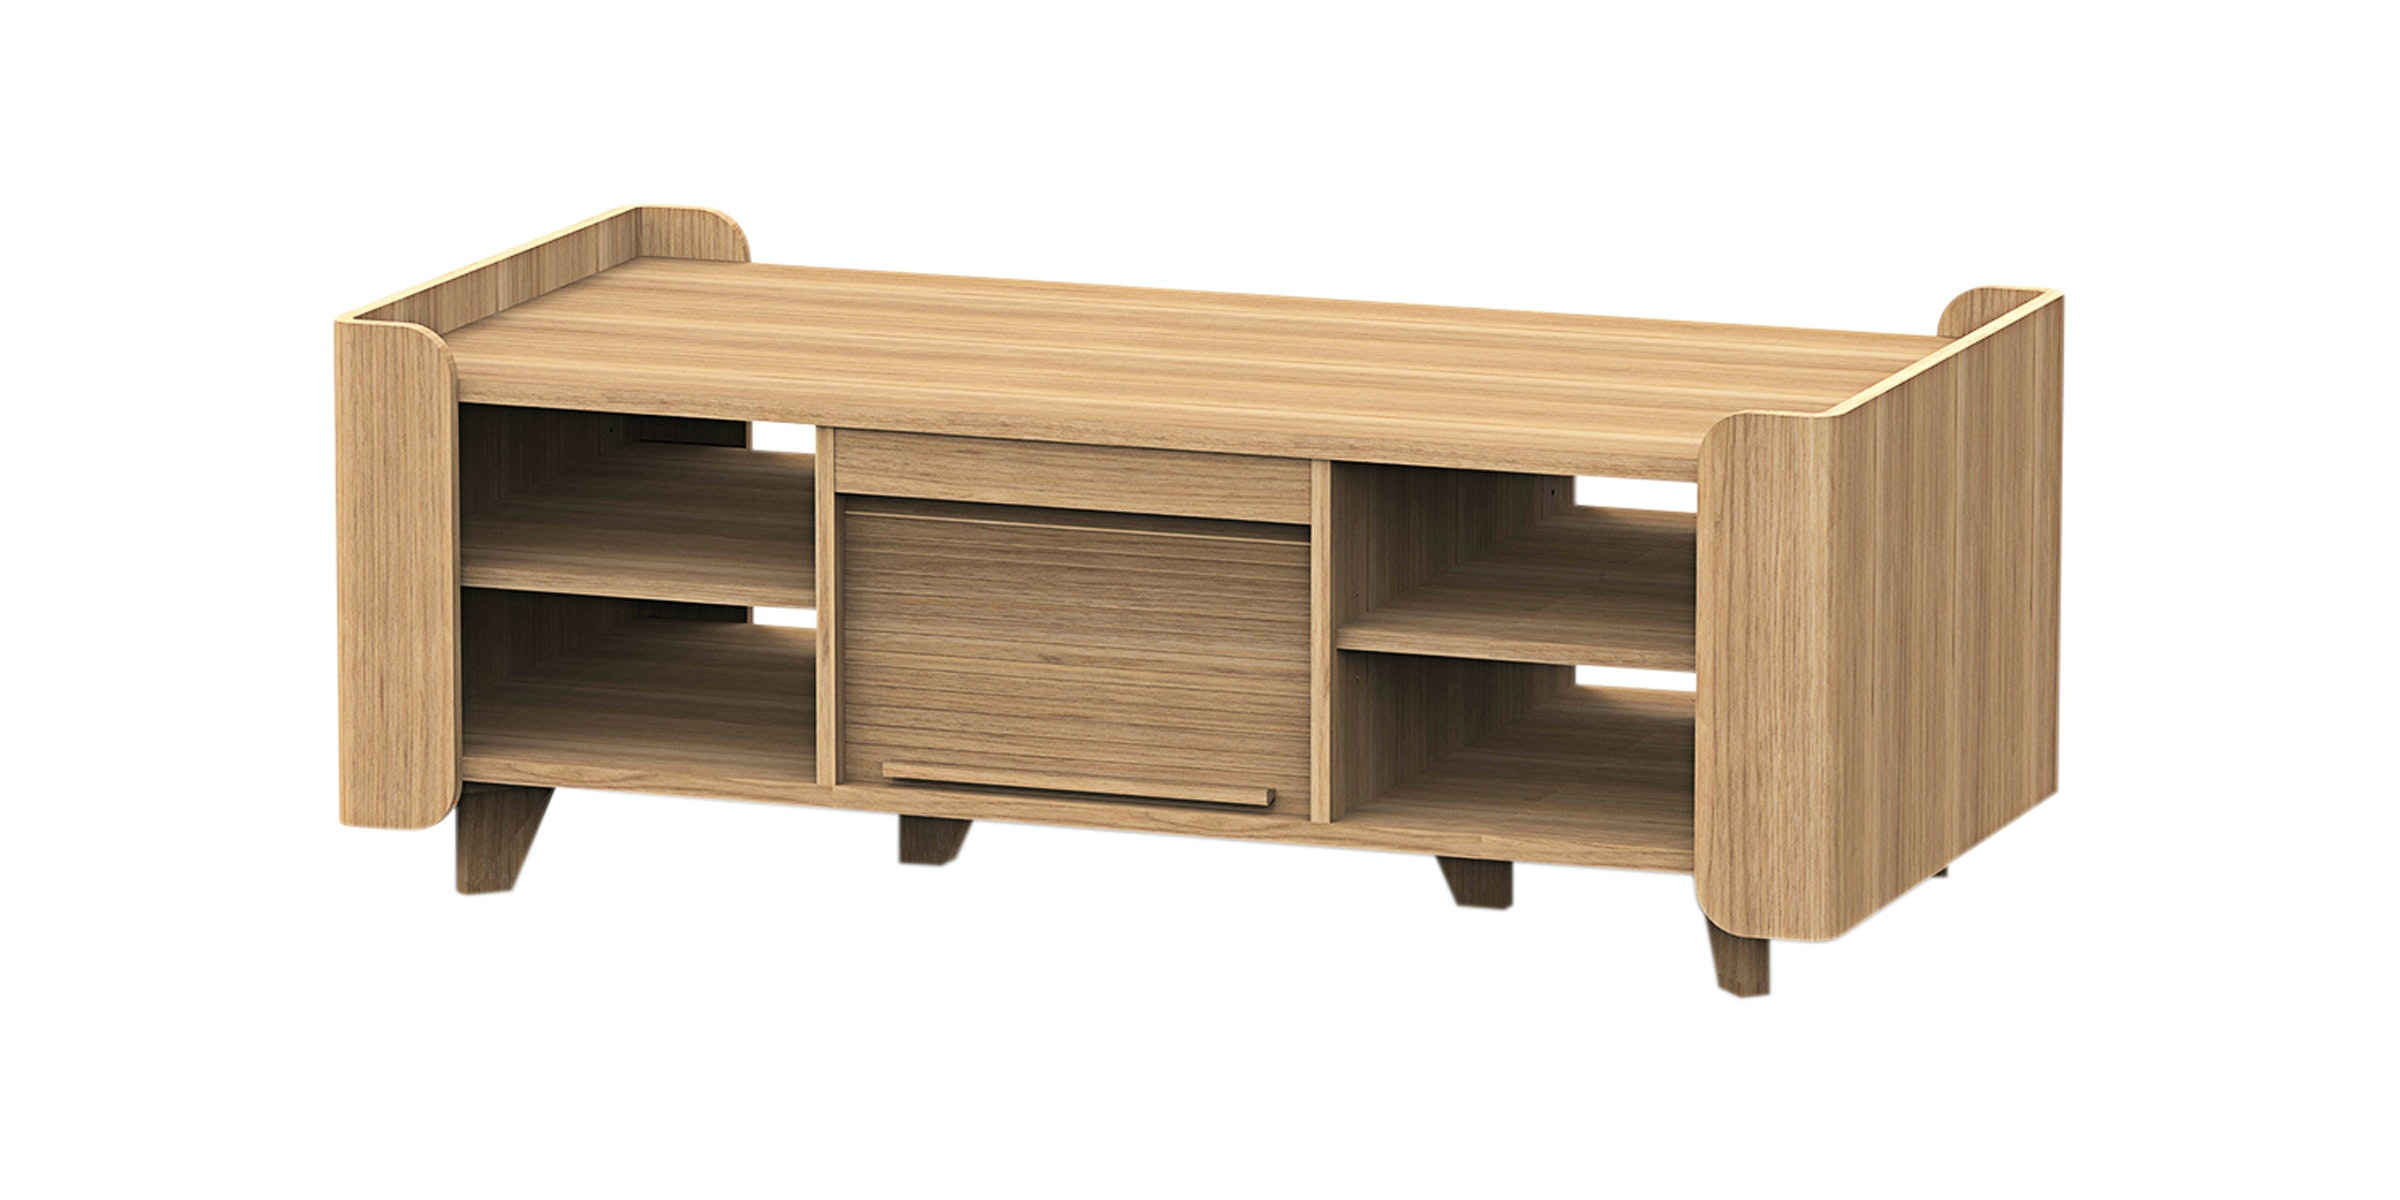 JYSK Coffee Table Jorgensen 120X60X45 CM Oak